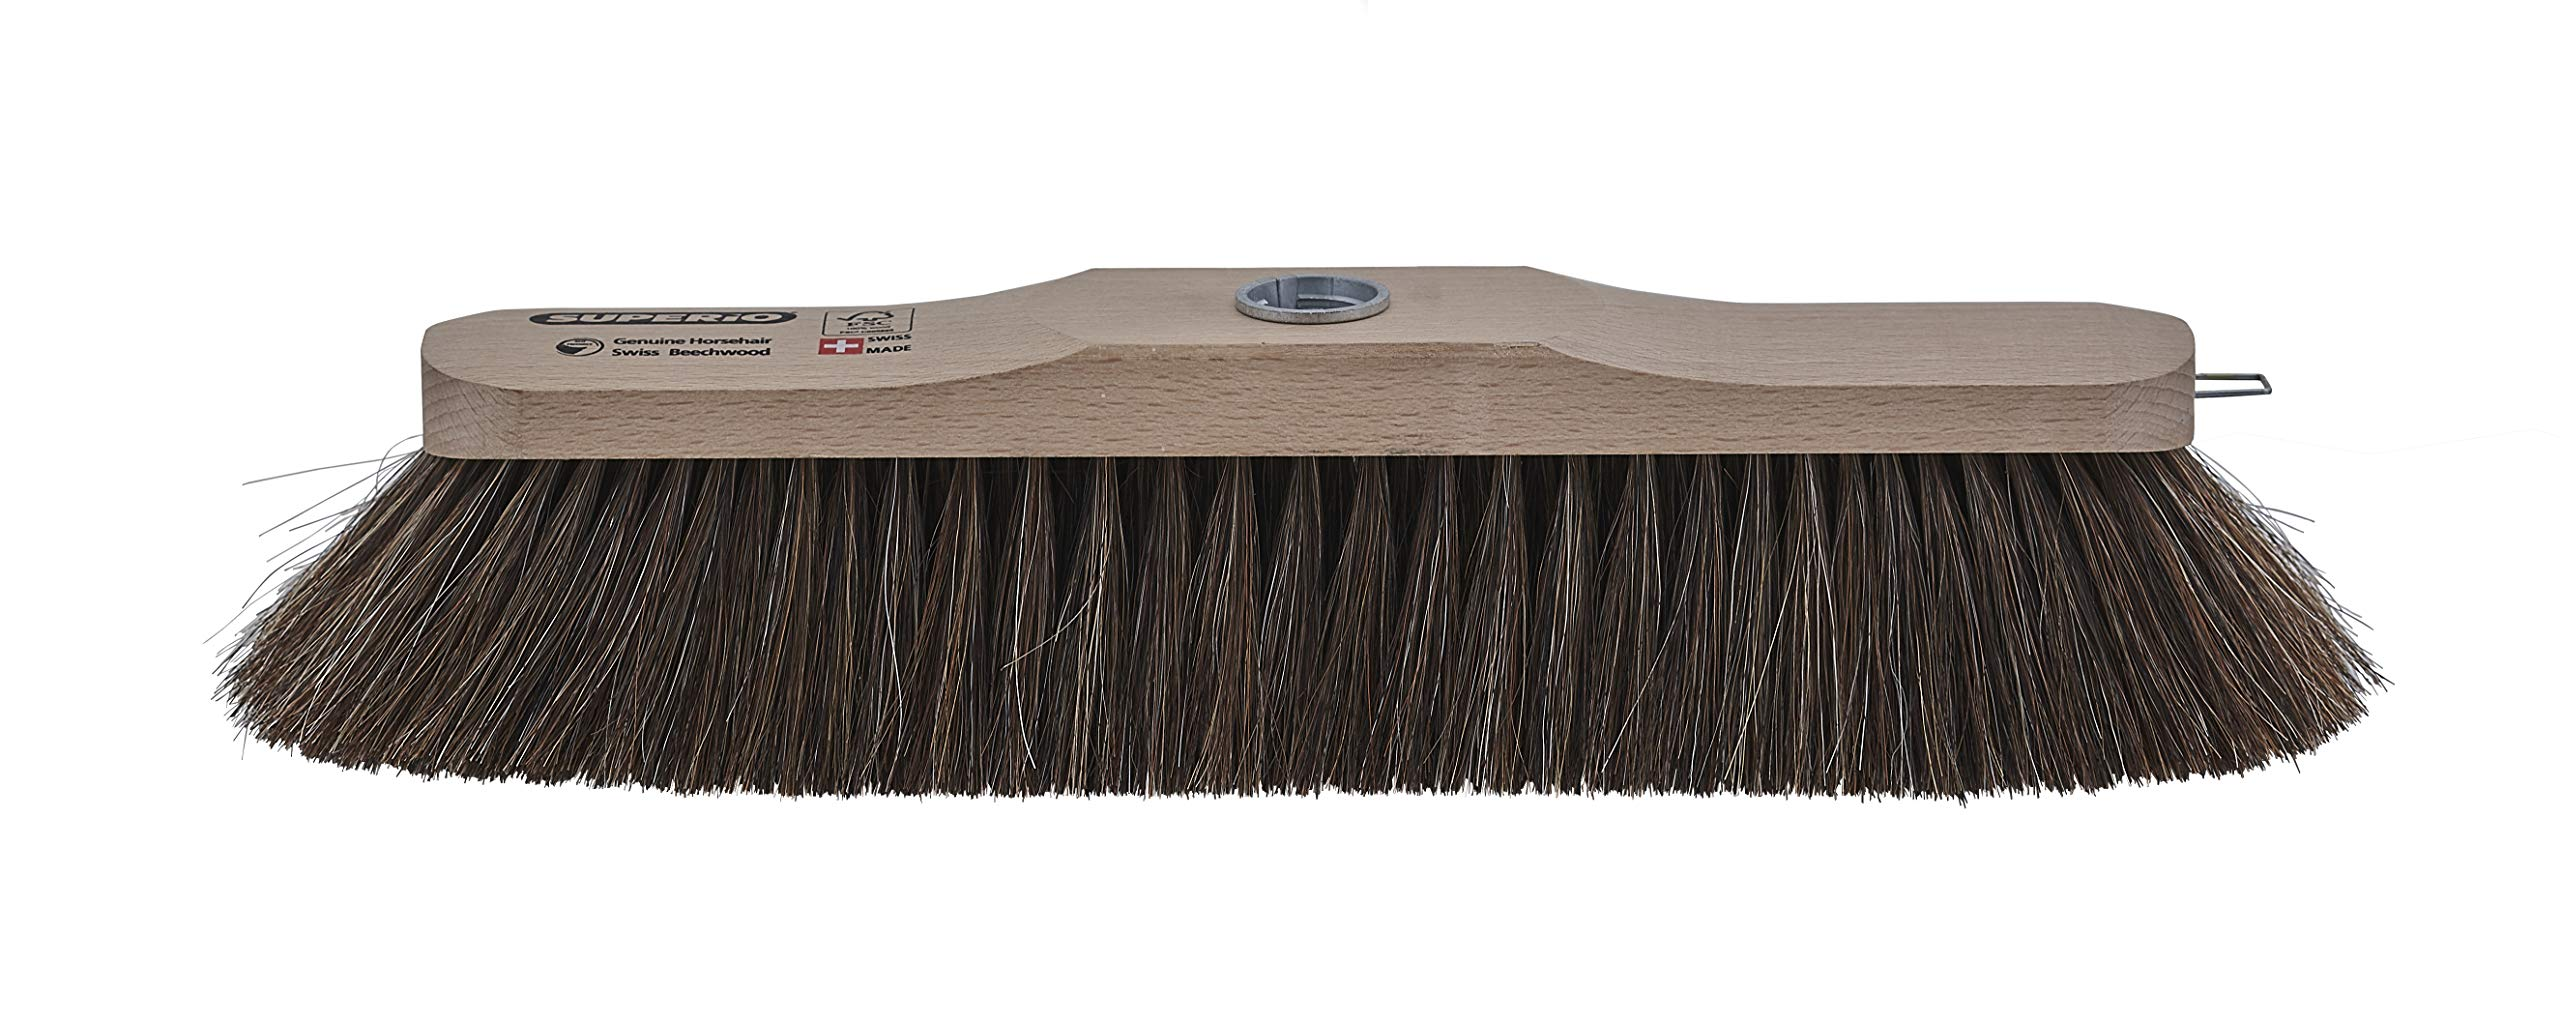 Superio - Premium Horsehair Broom with Beach Wood Brush Head | Features Metal Multi Position Handle (53'' Long) | Premium Swiss Made Sweeping Broom for Hardwood & Tile Surfaces | Anti-Scratch Bristles by Superio (Image #2)